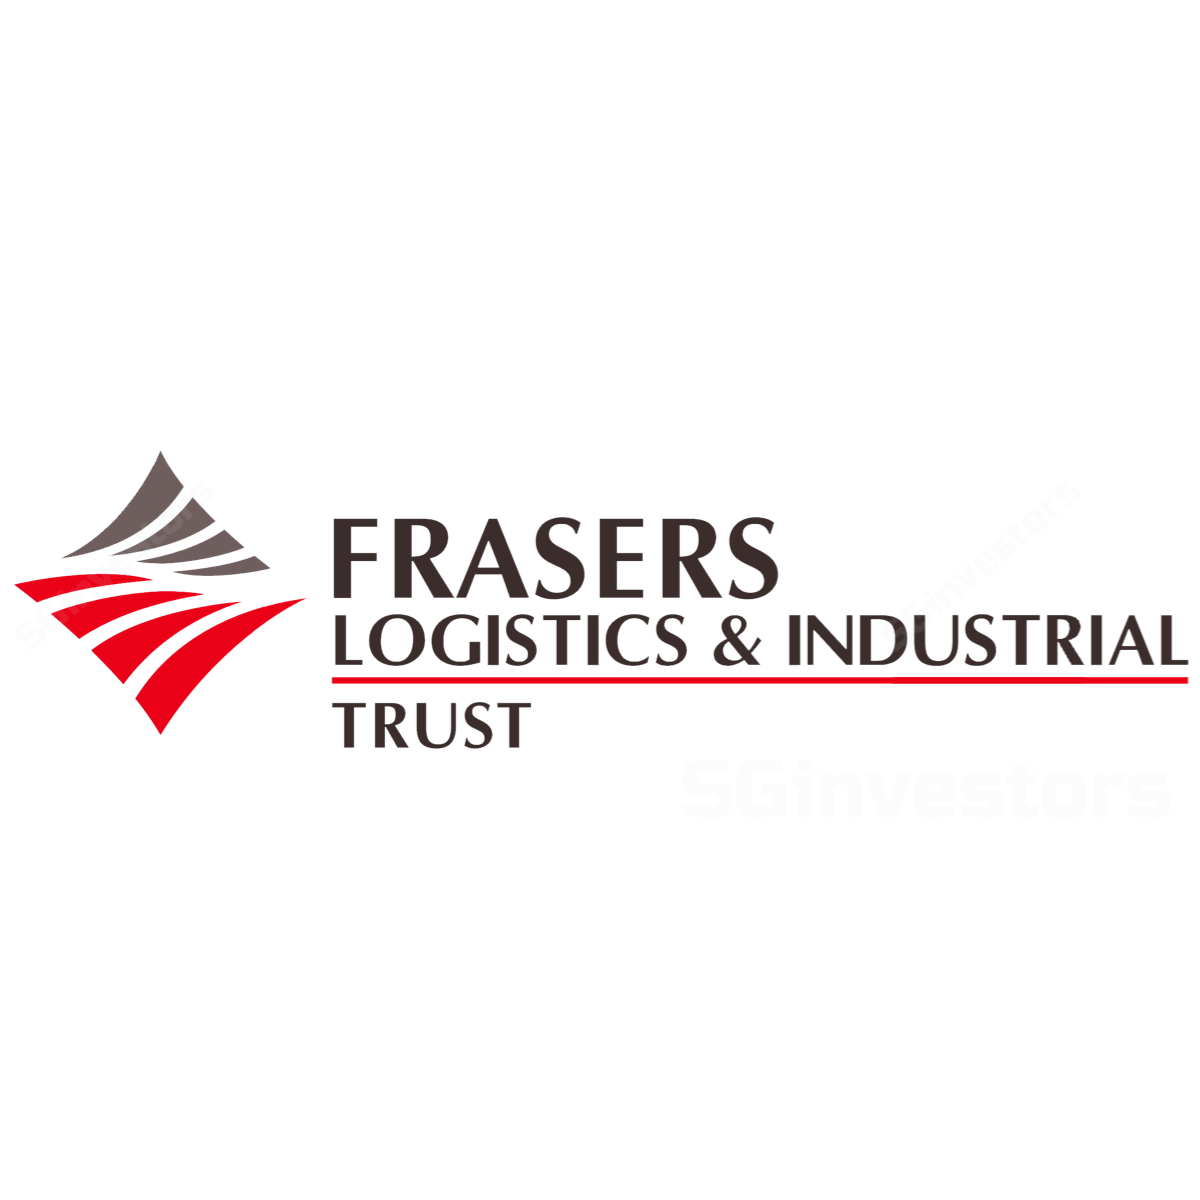 Frasers Logistics & Industrial Trust - DBS Vickers 2017-02-07: Steady returns with firepower to acquire